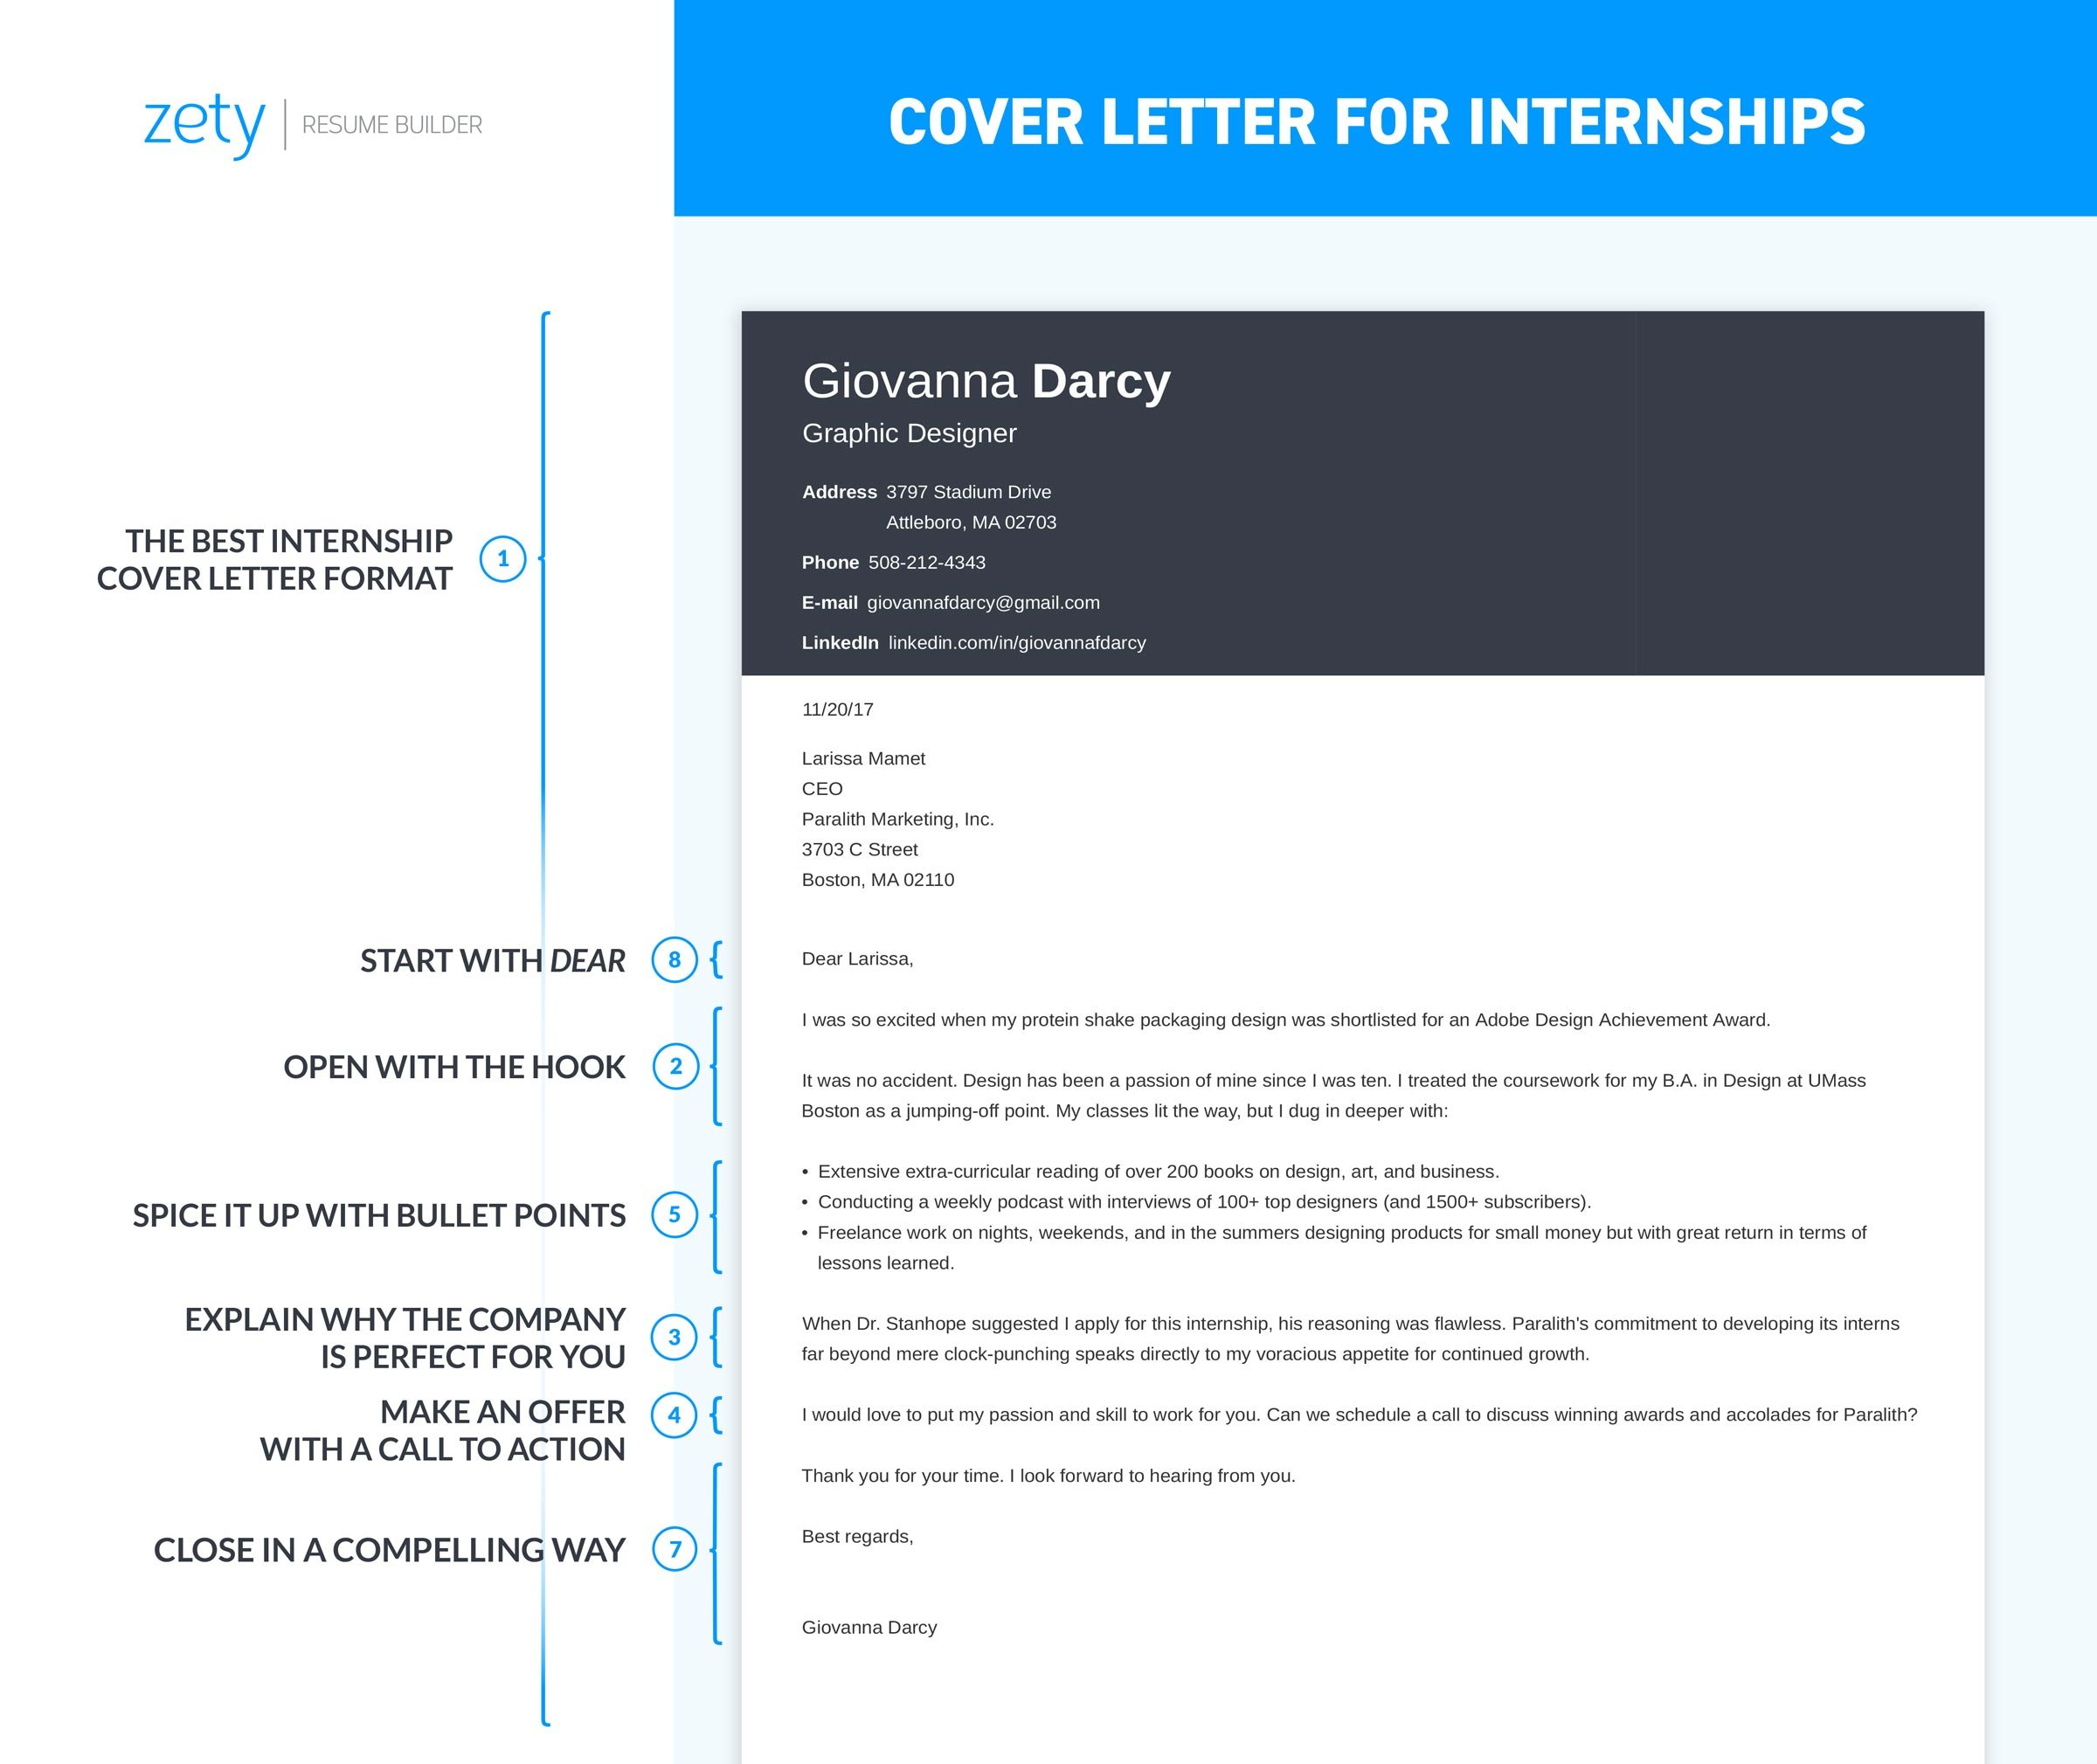 Writing A Cover Letter Design: How To Write A Cover Letter For An Internship [+20 Examples]